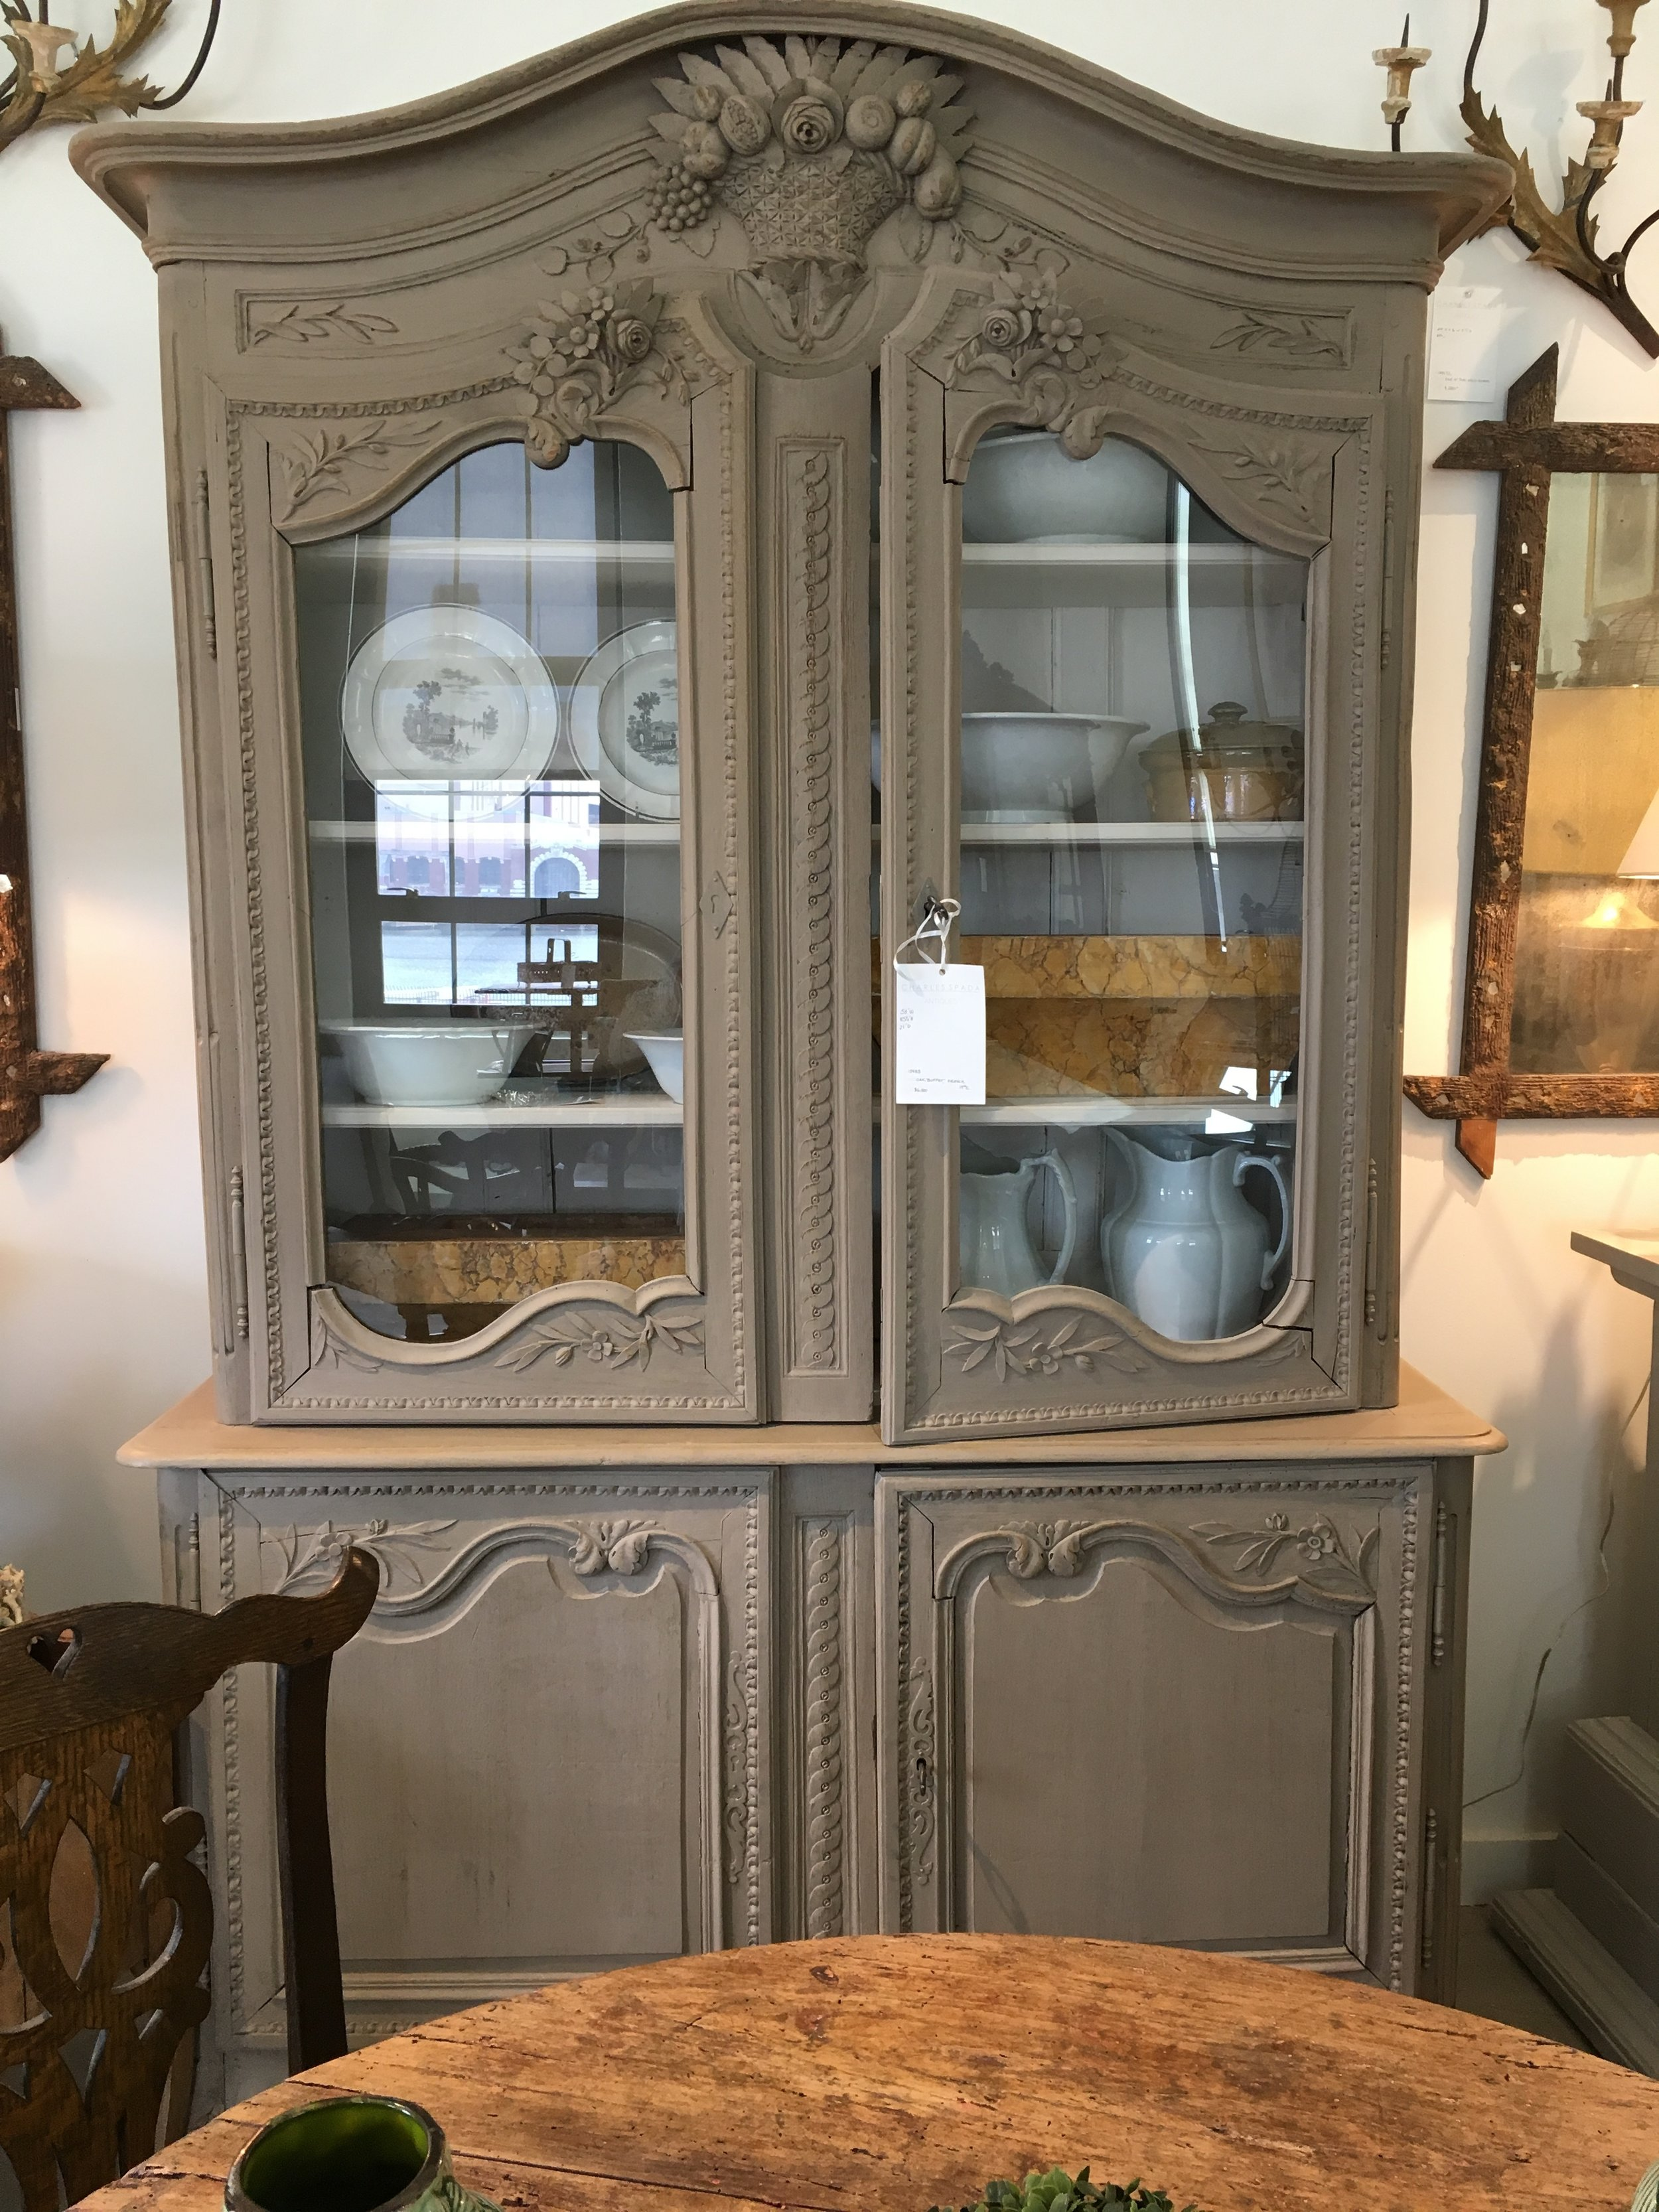 The taupe painted finish on this pretty French oak glass doored cabinet really lightens and tones down the formality on this piece.